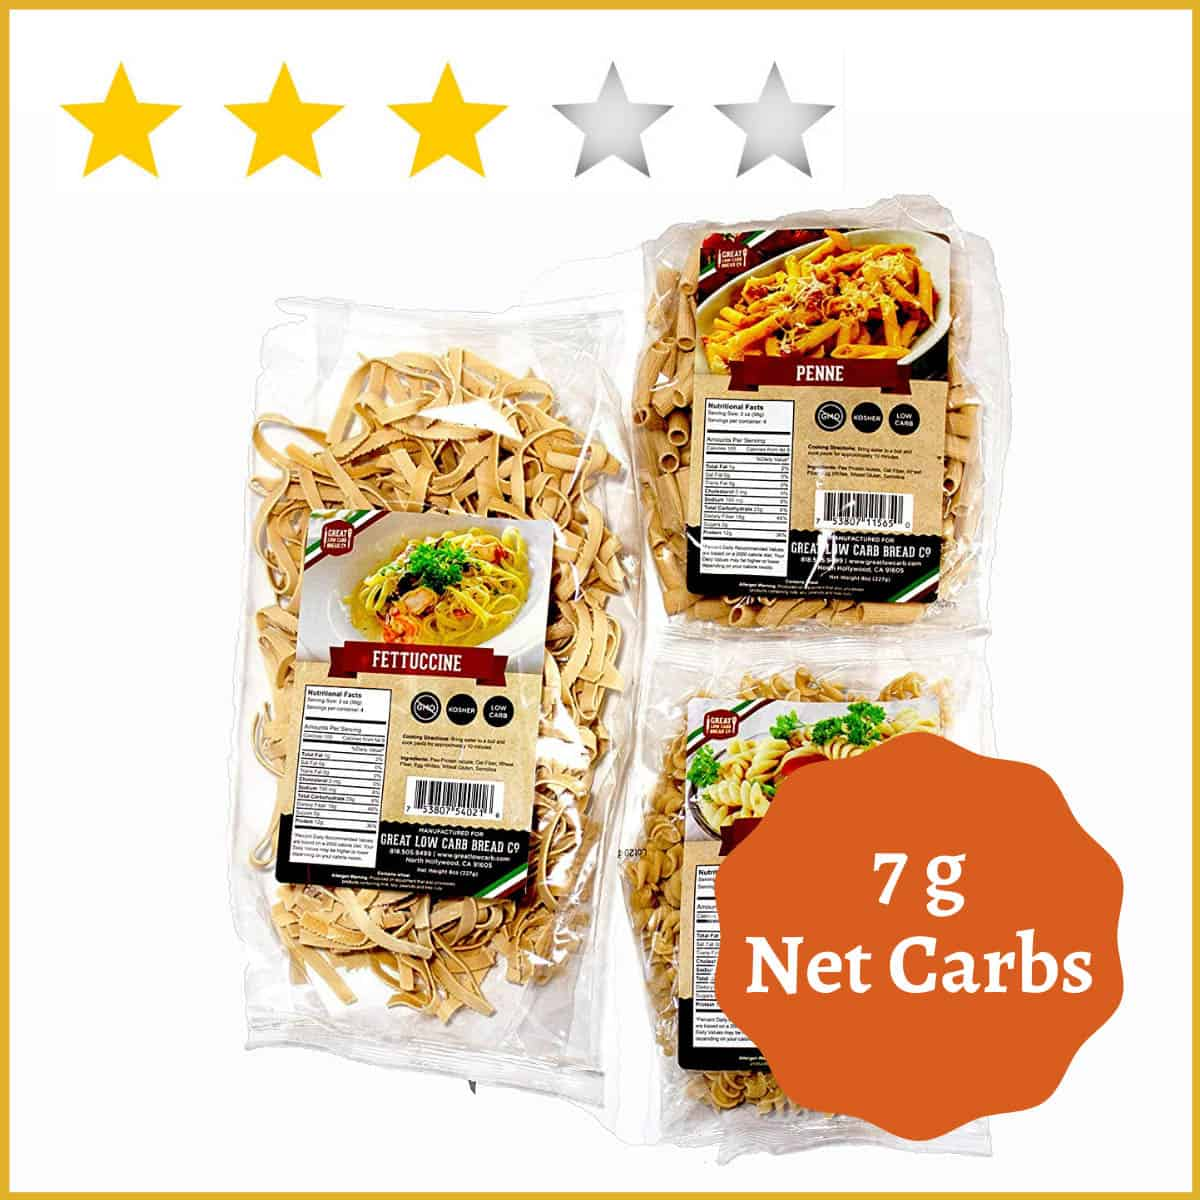 Great Low Carb Bread Company  – Fettuccine Pasta